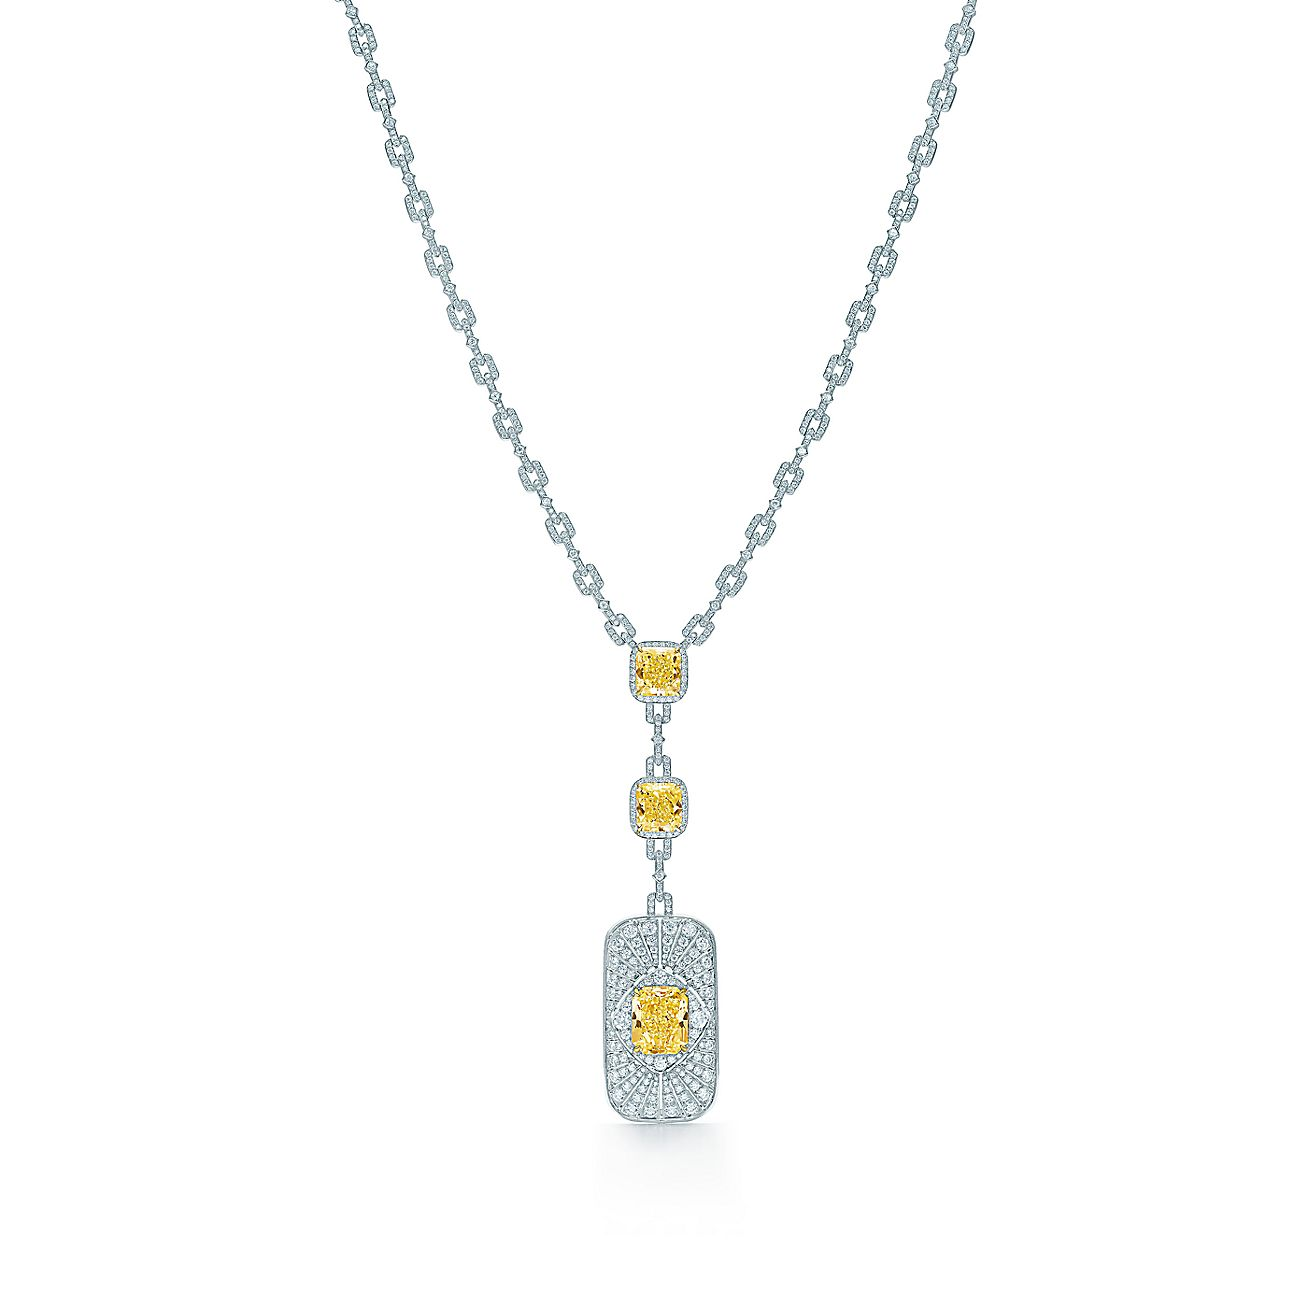 The Tiffany Radiance<br>Necklace